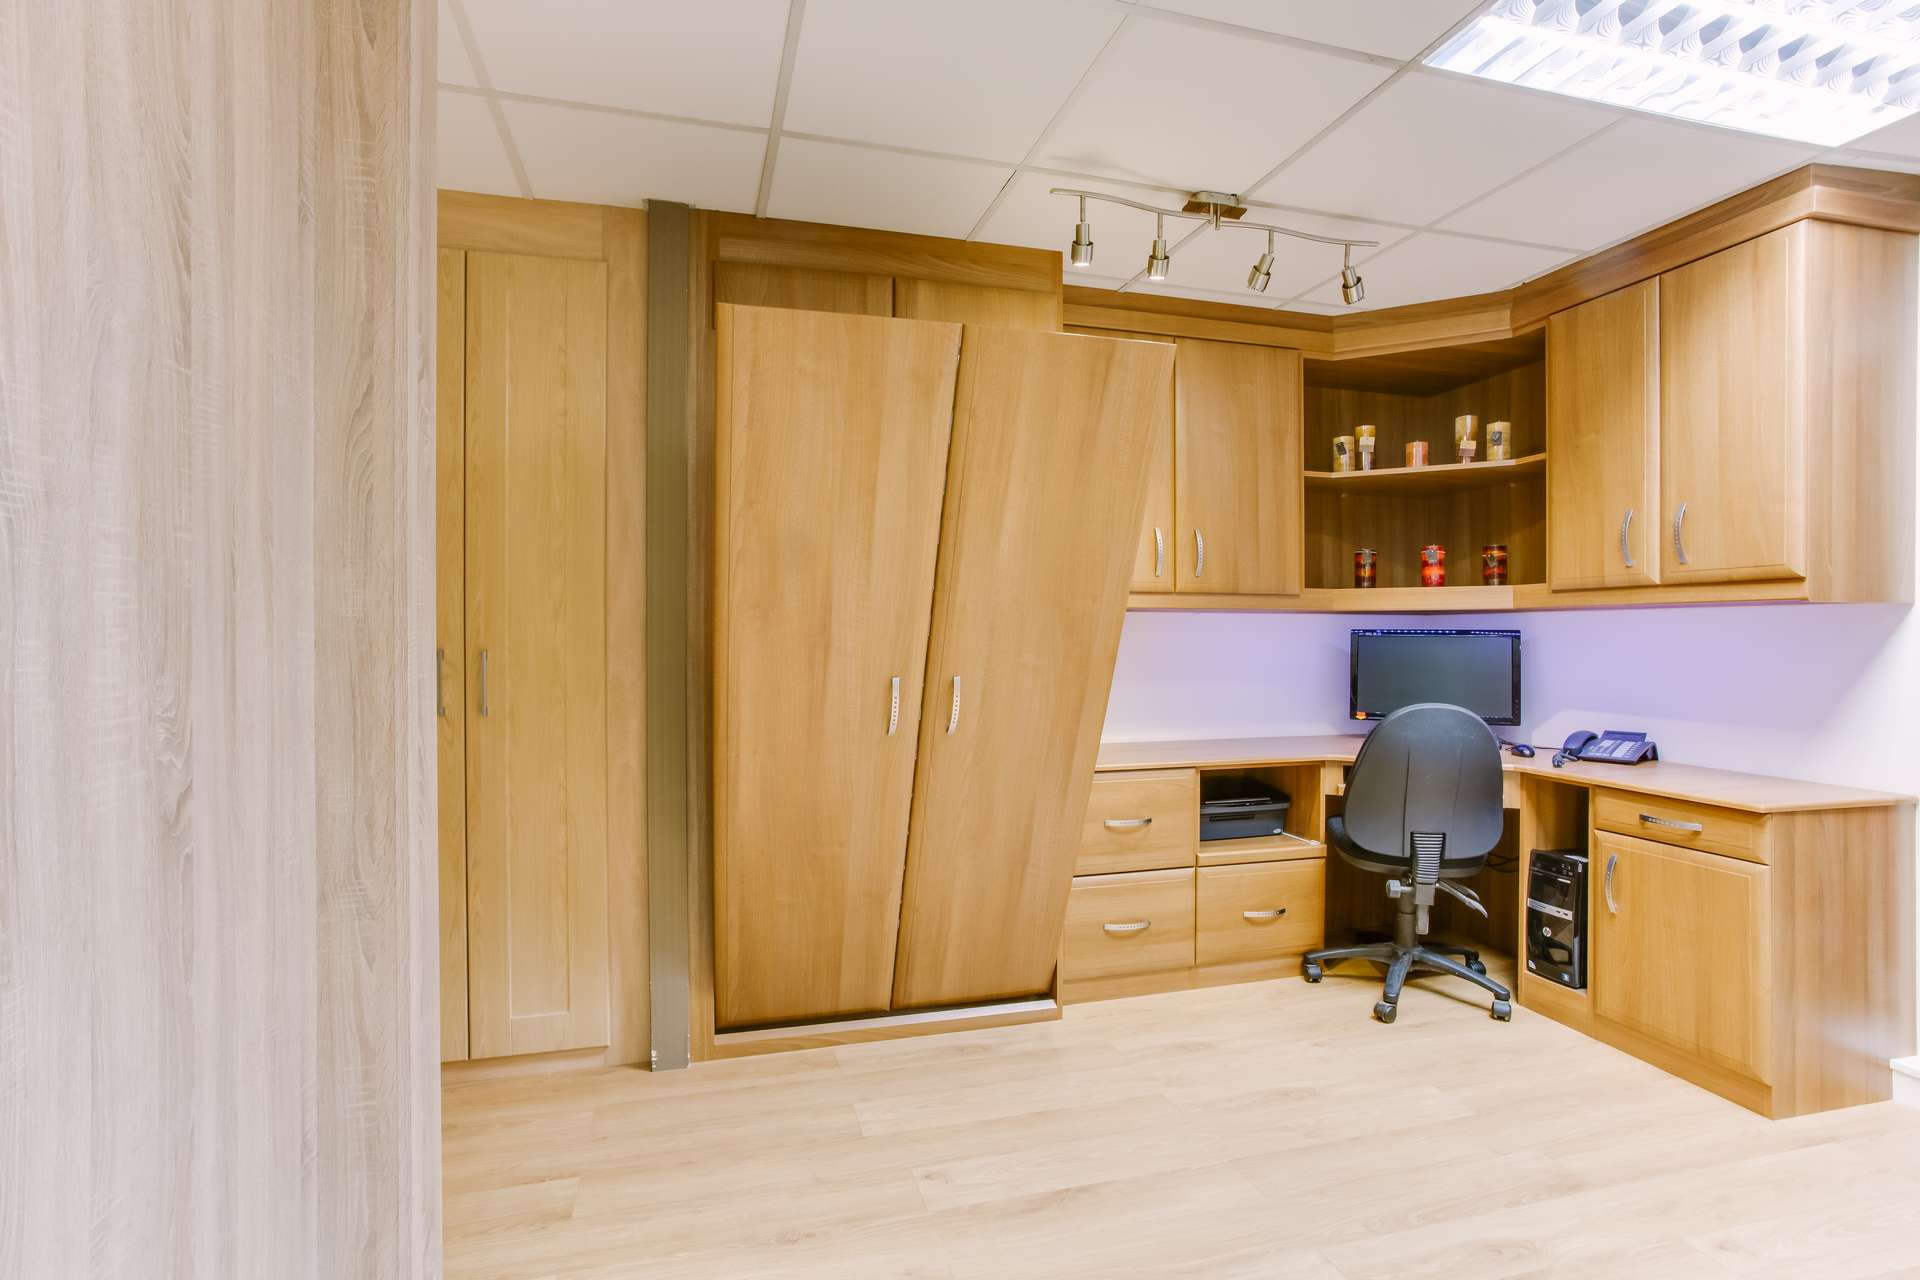 Foldaway beds in cupboards and wardrobes custom world for Best office design in the world